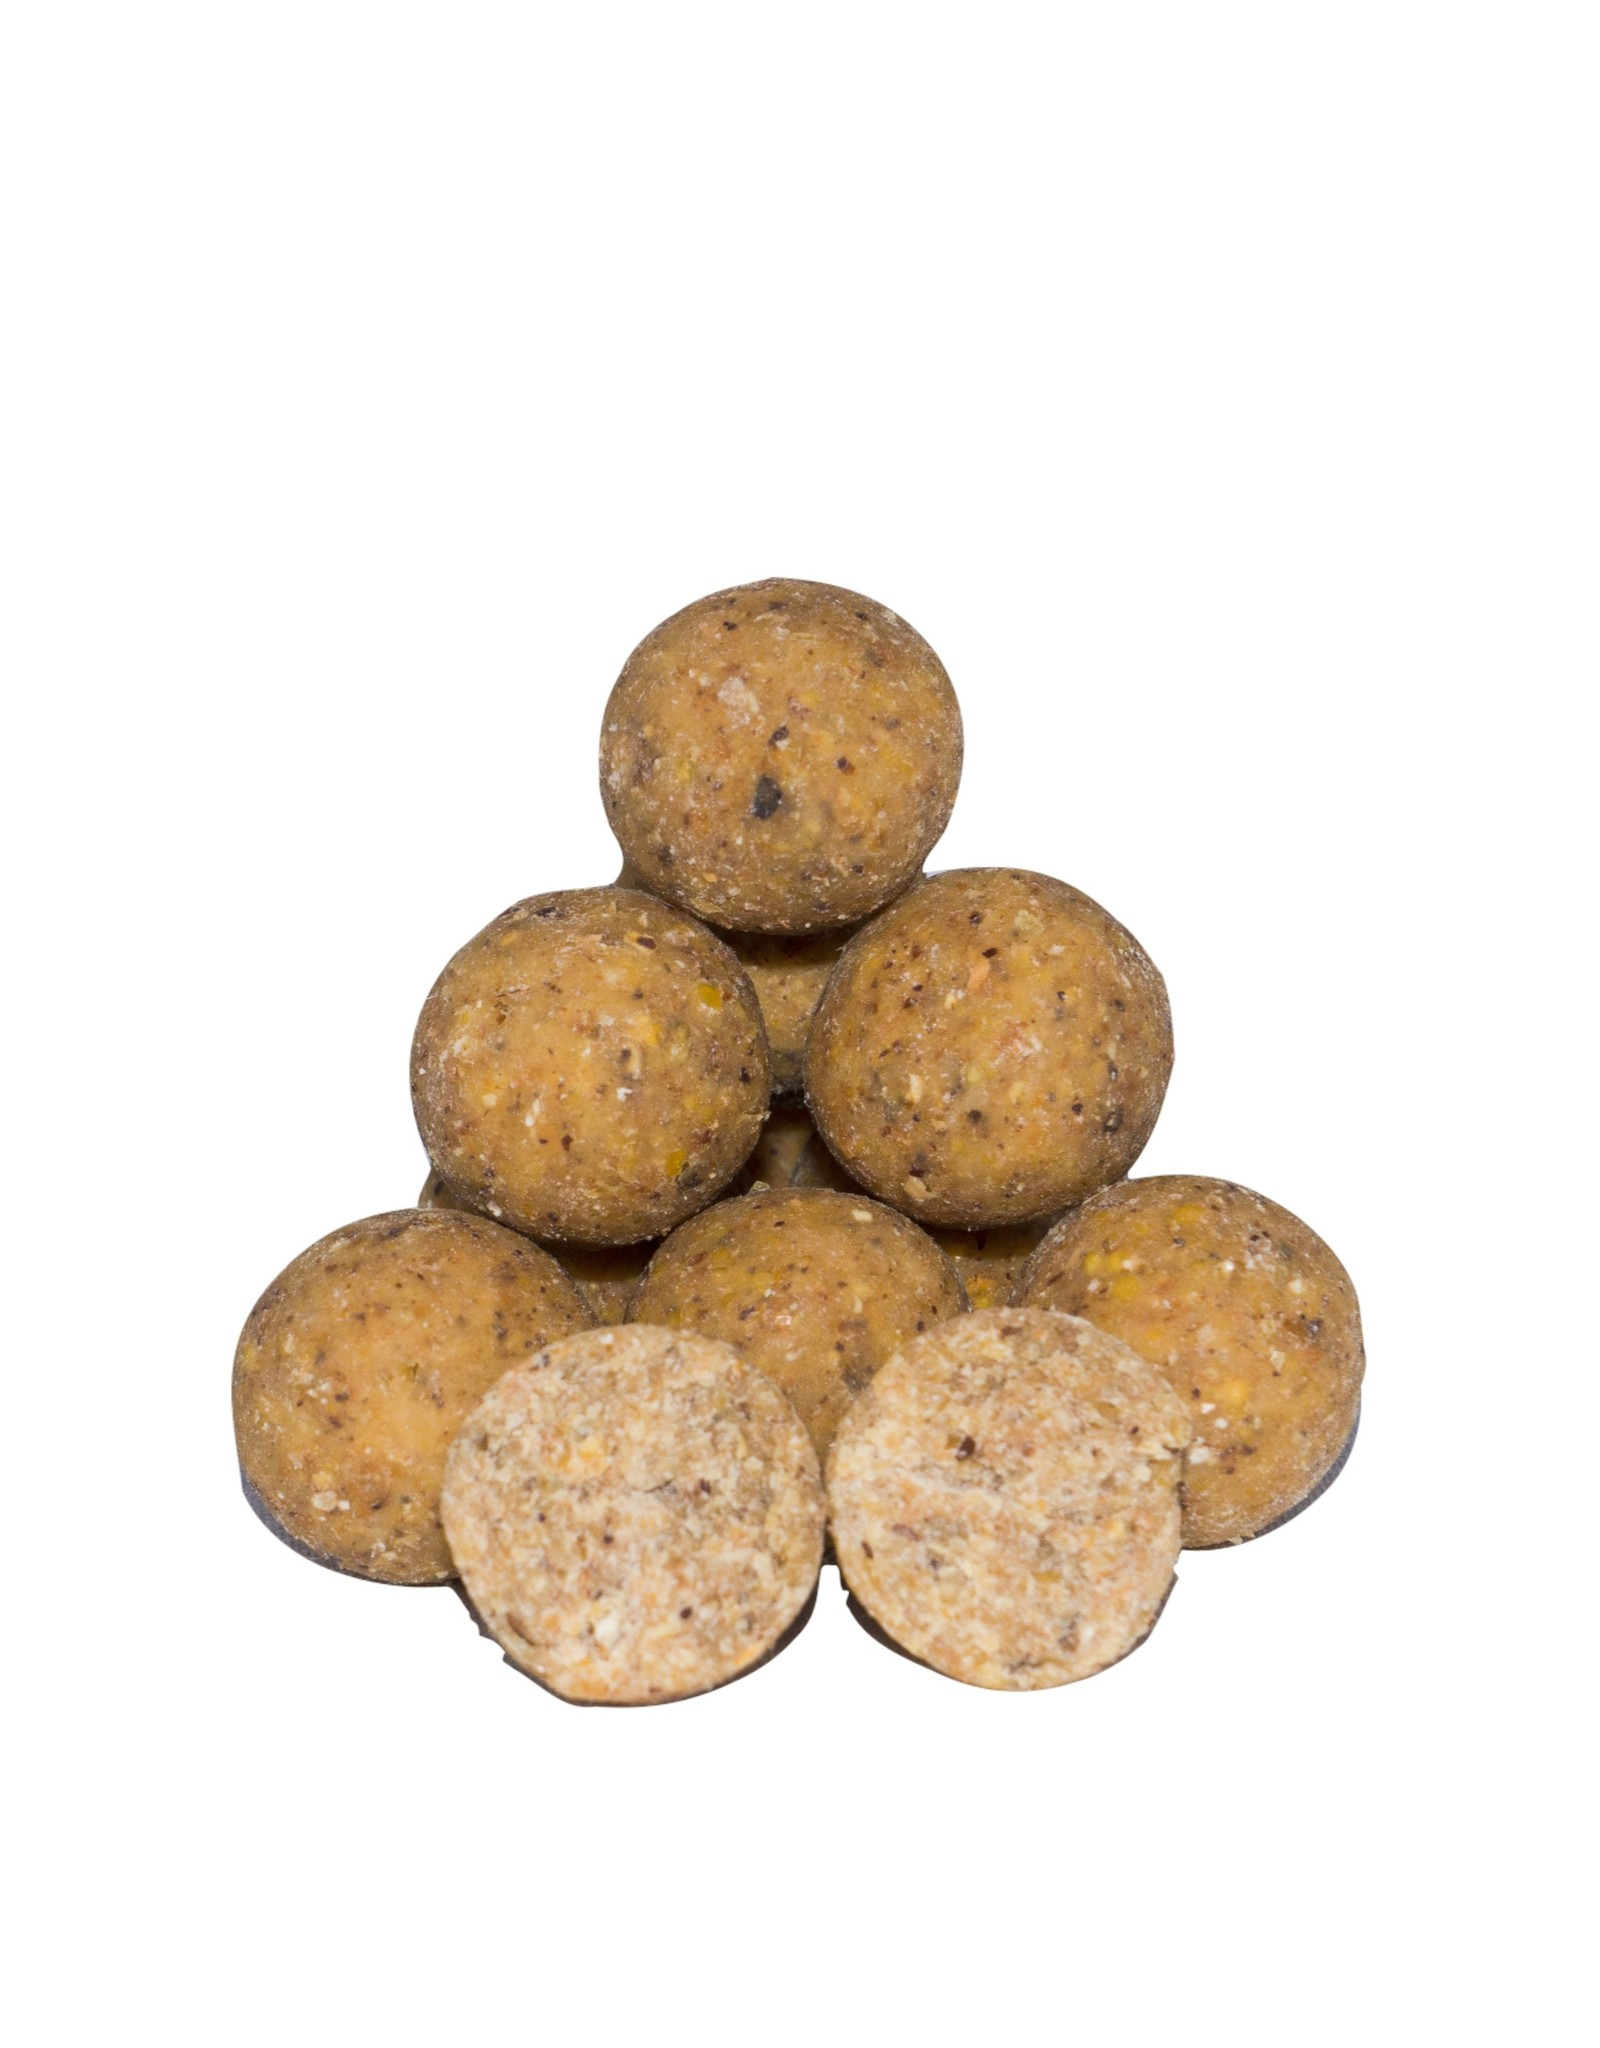 Baitworld Baitworld Scopex Tigernut Boilies 20kg